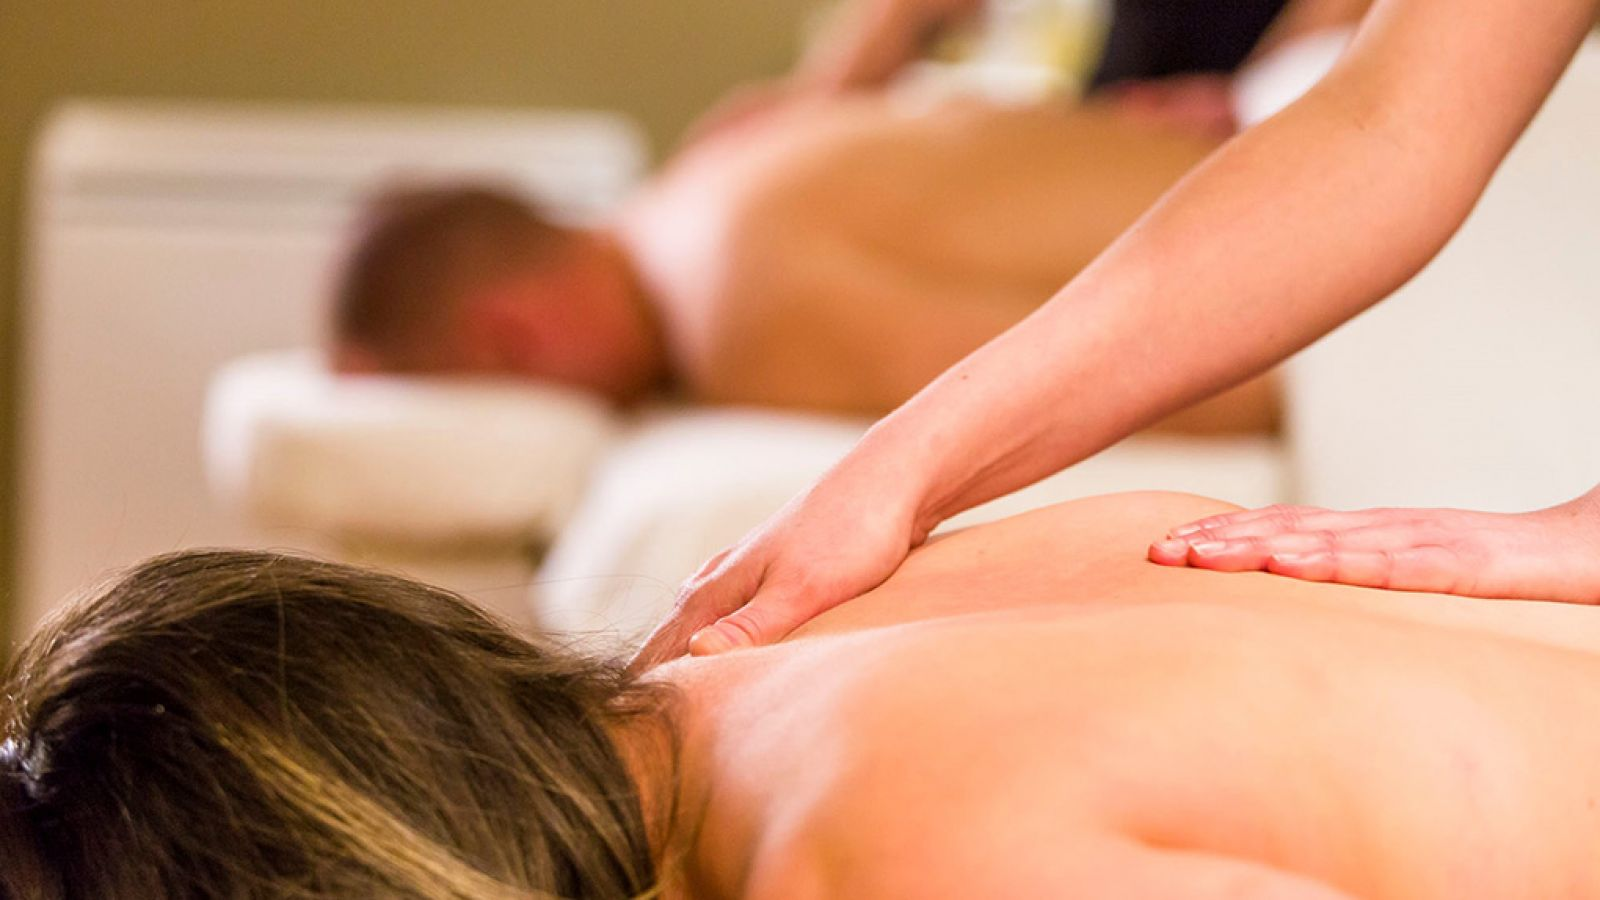 Enjoy a relaxing massage.